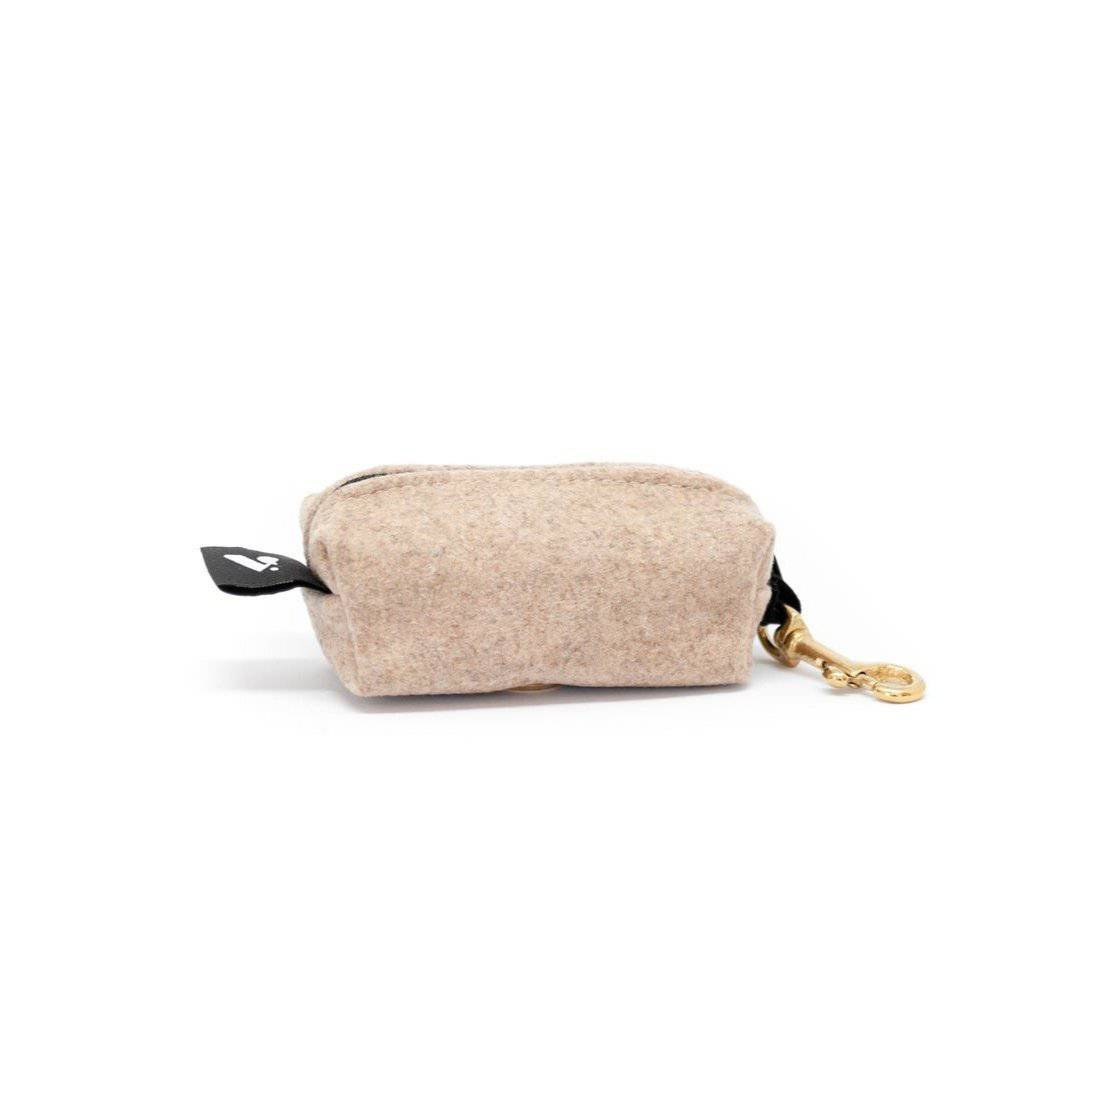 Sand Colour - Melton Wool Poo bag holder - Holler Brighton